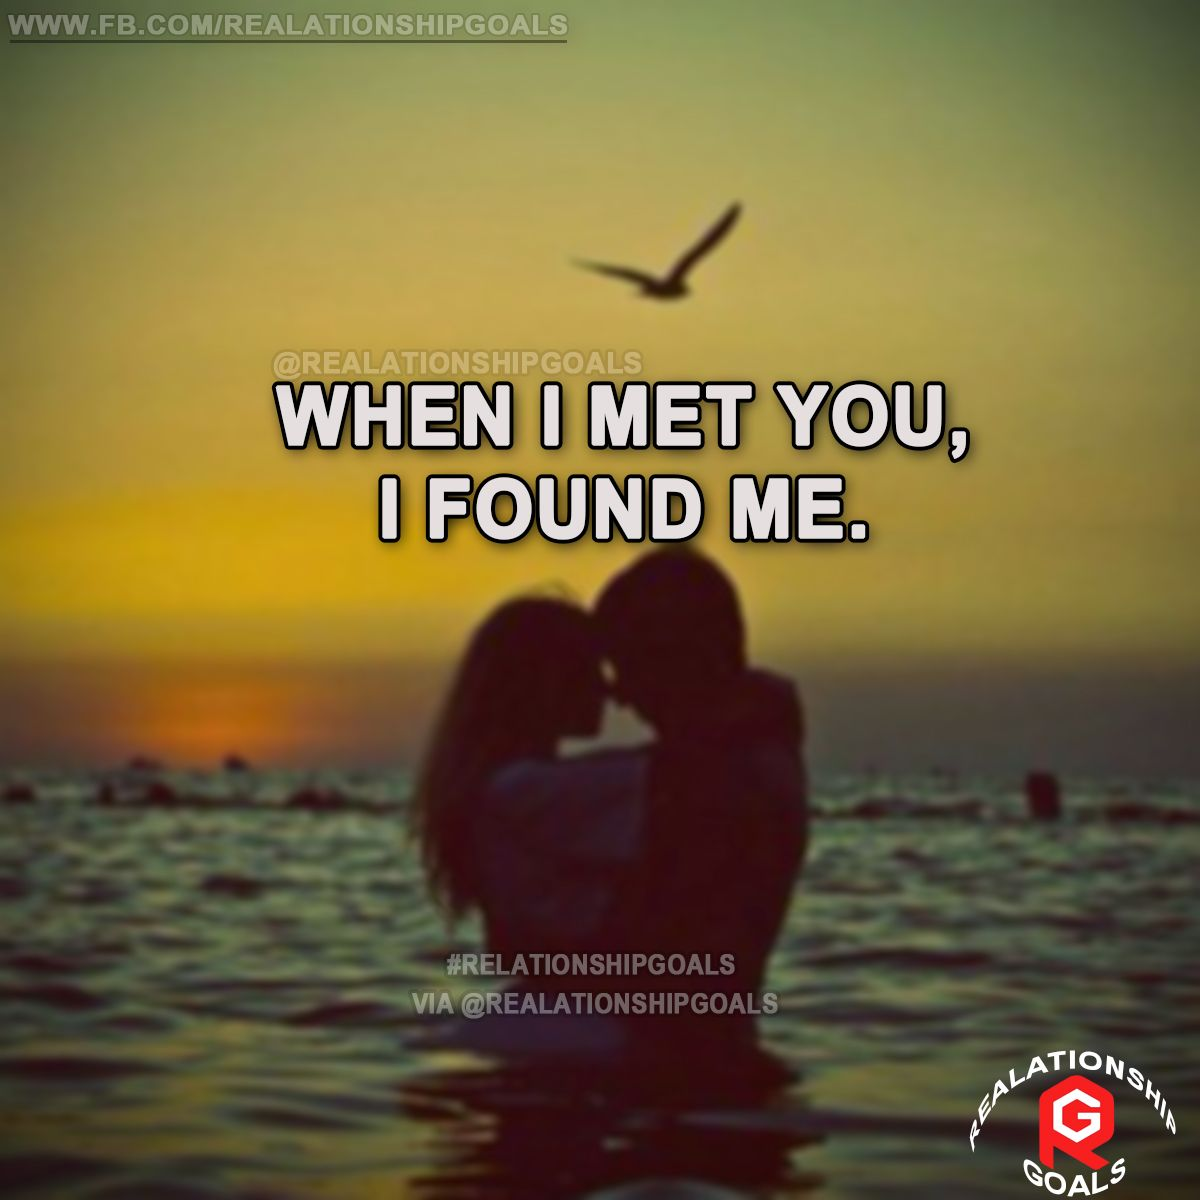 When i met you, I found me. #relation #relationshipgoals #relationship #lovequotes #love #heart #lovely #relationshipquotes